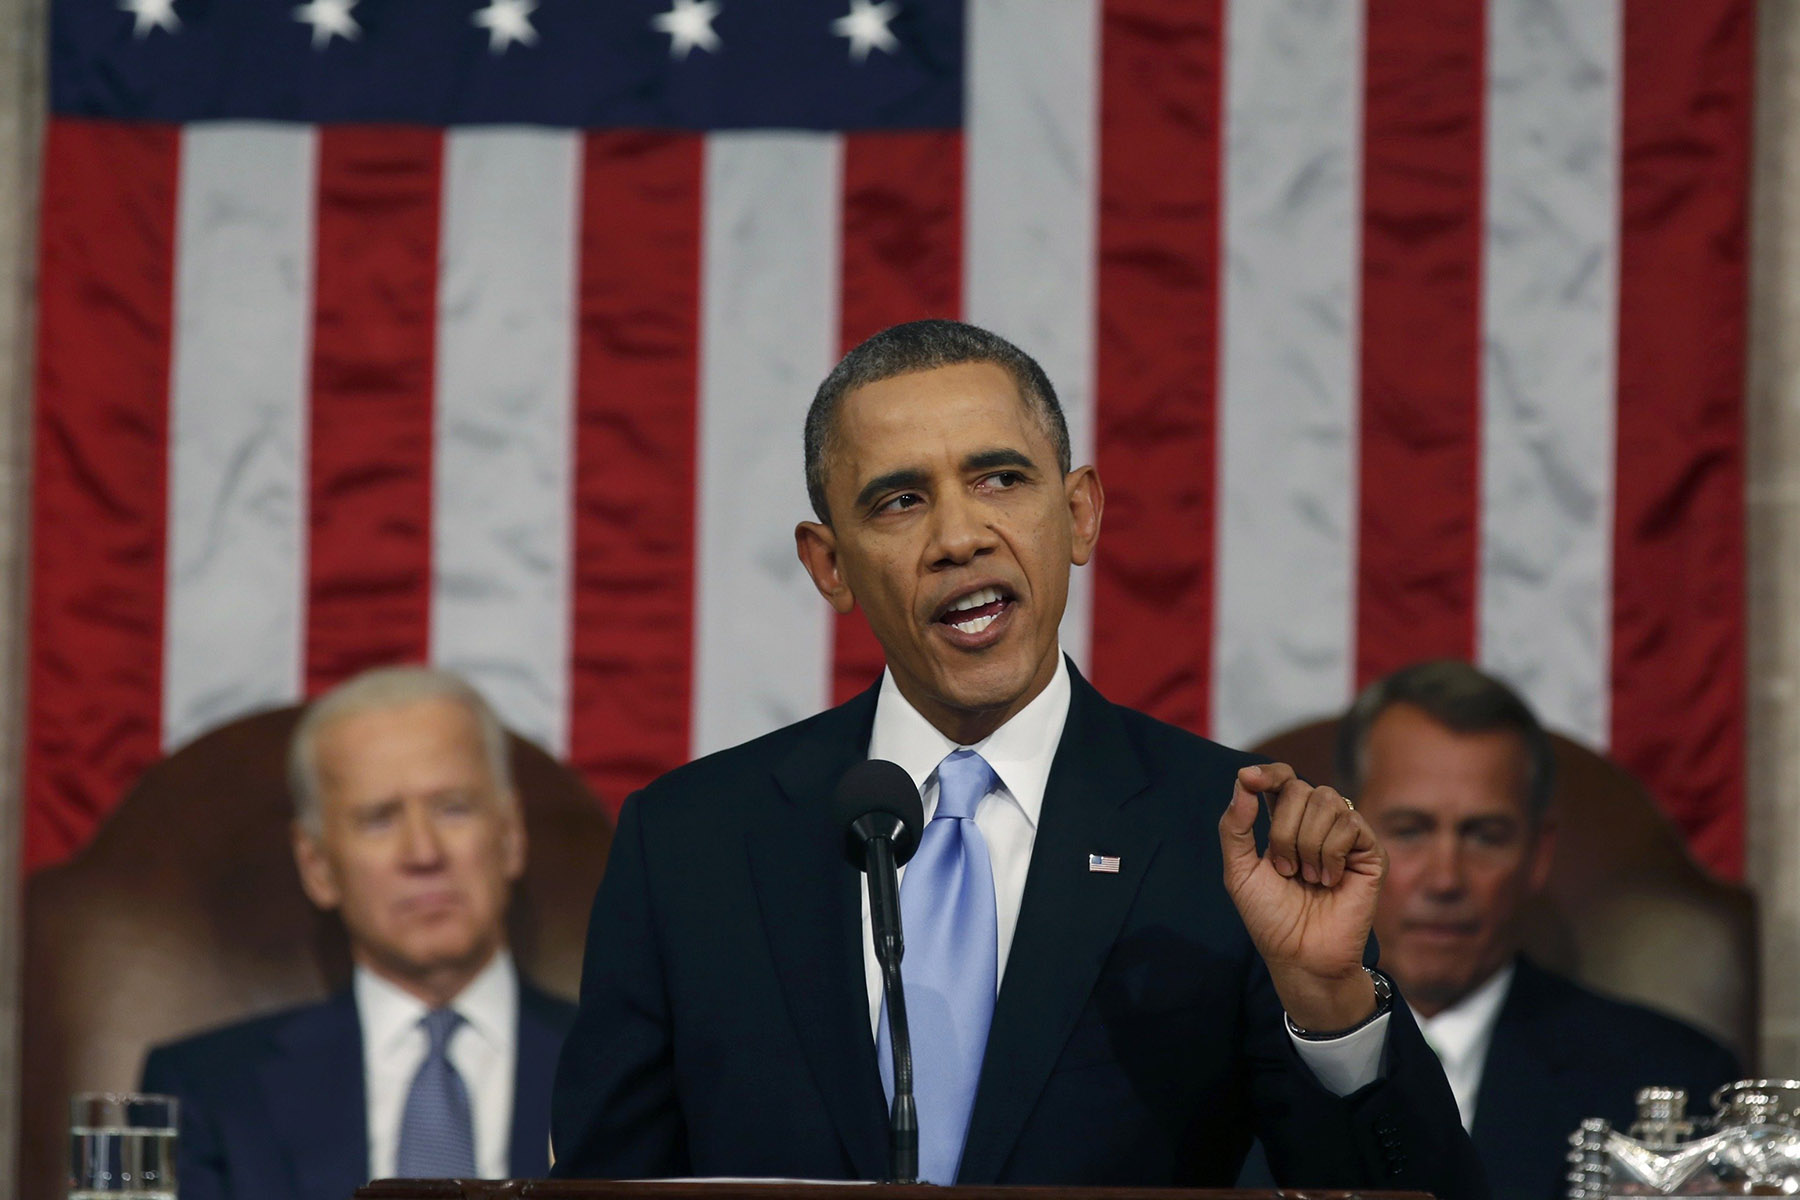 U.S. President Barack Obama delivers his State of the Union speech on Capitol Hill in Washington January 28, 2014.